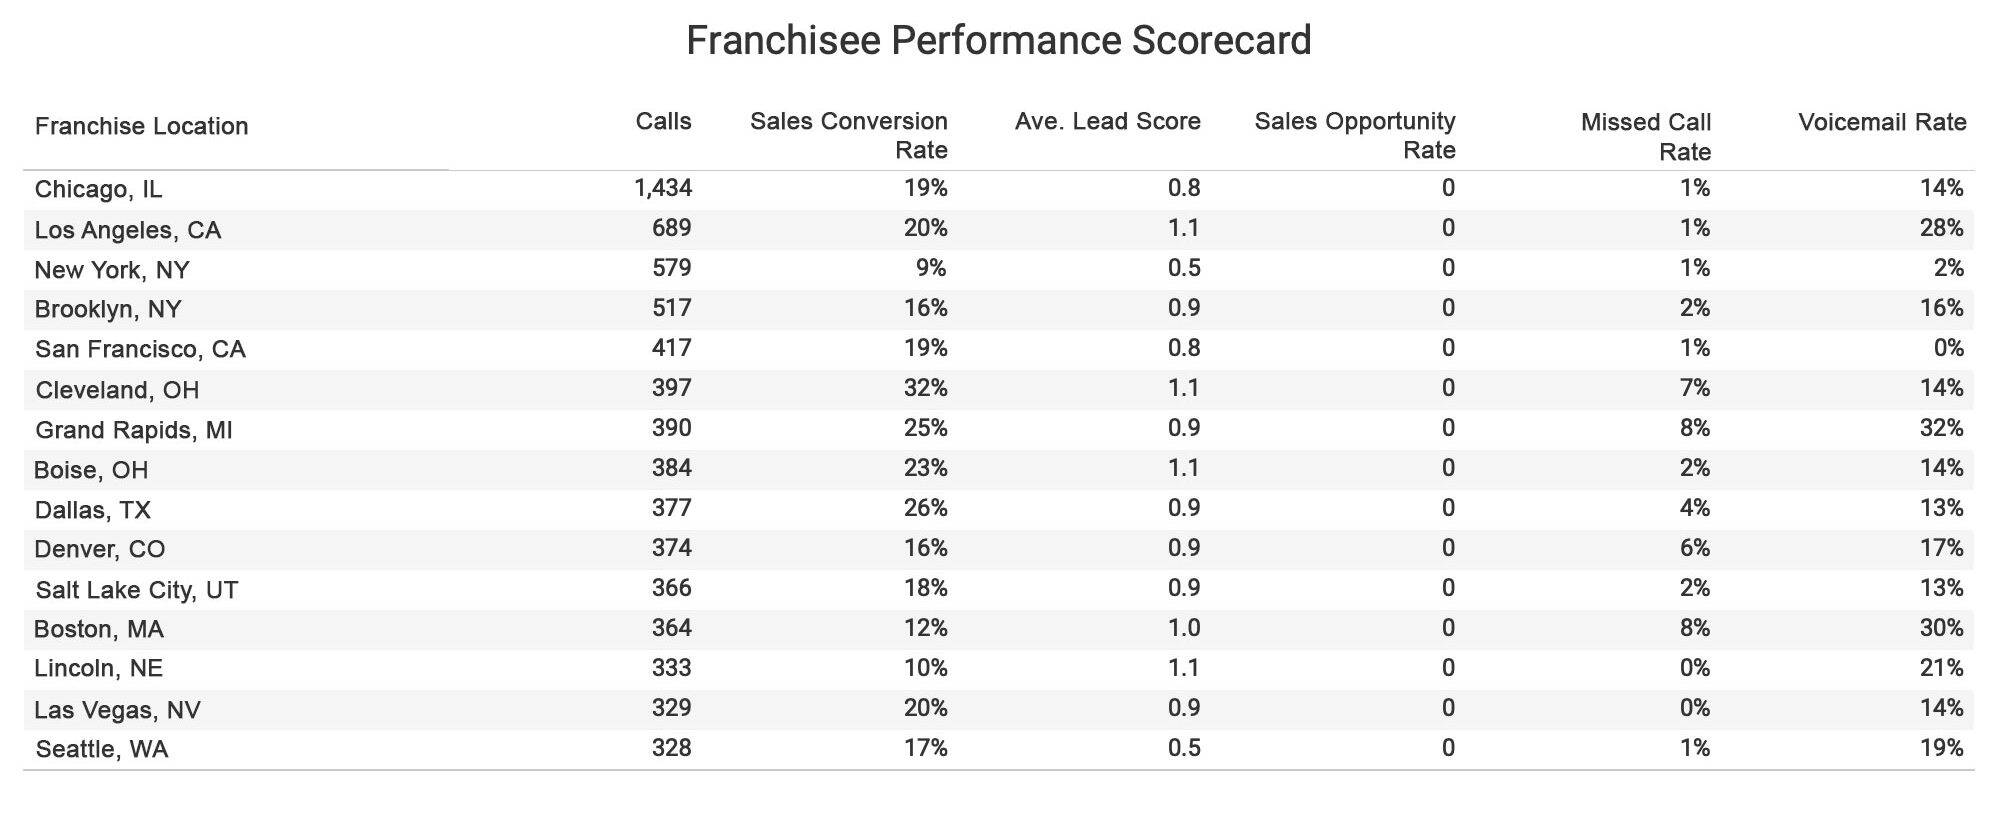 Franchise performance scorecard by location